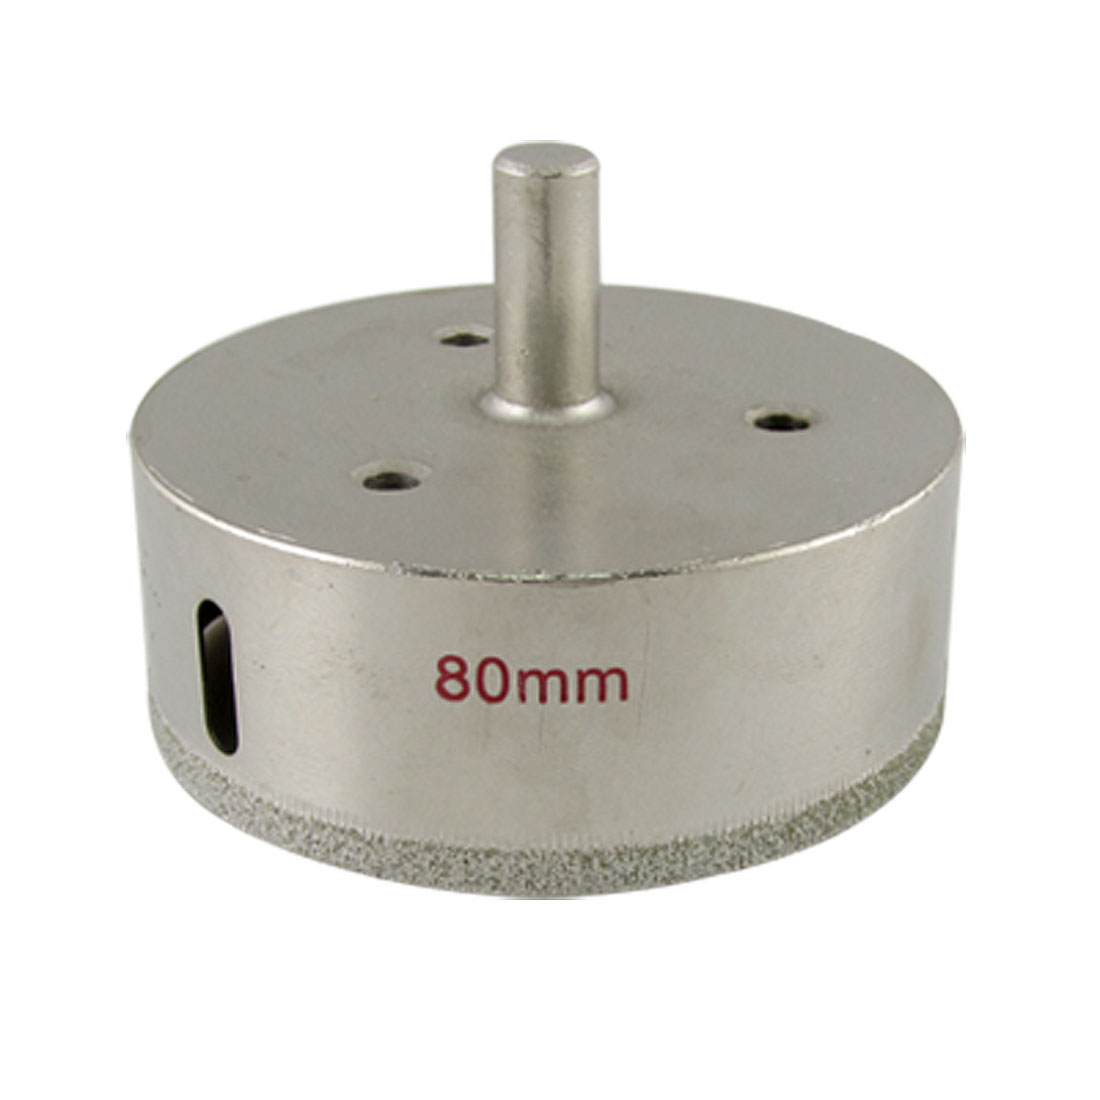 Glass 80mm Diameter Diamond Coated Hole Saw Drilling Tool